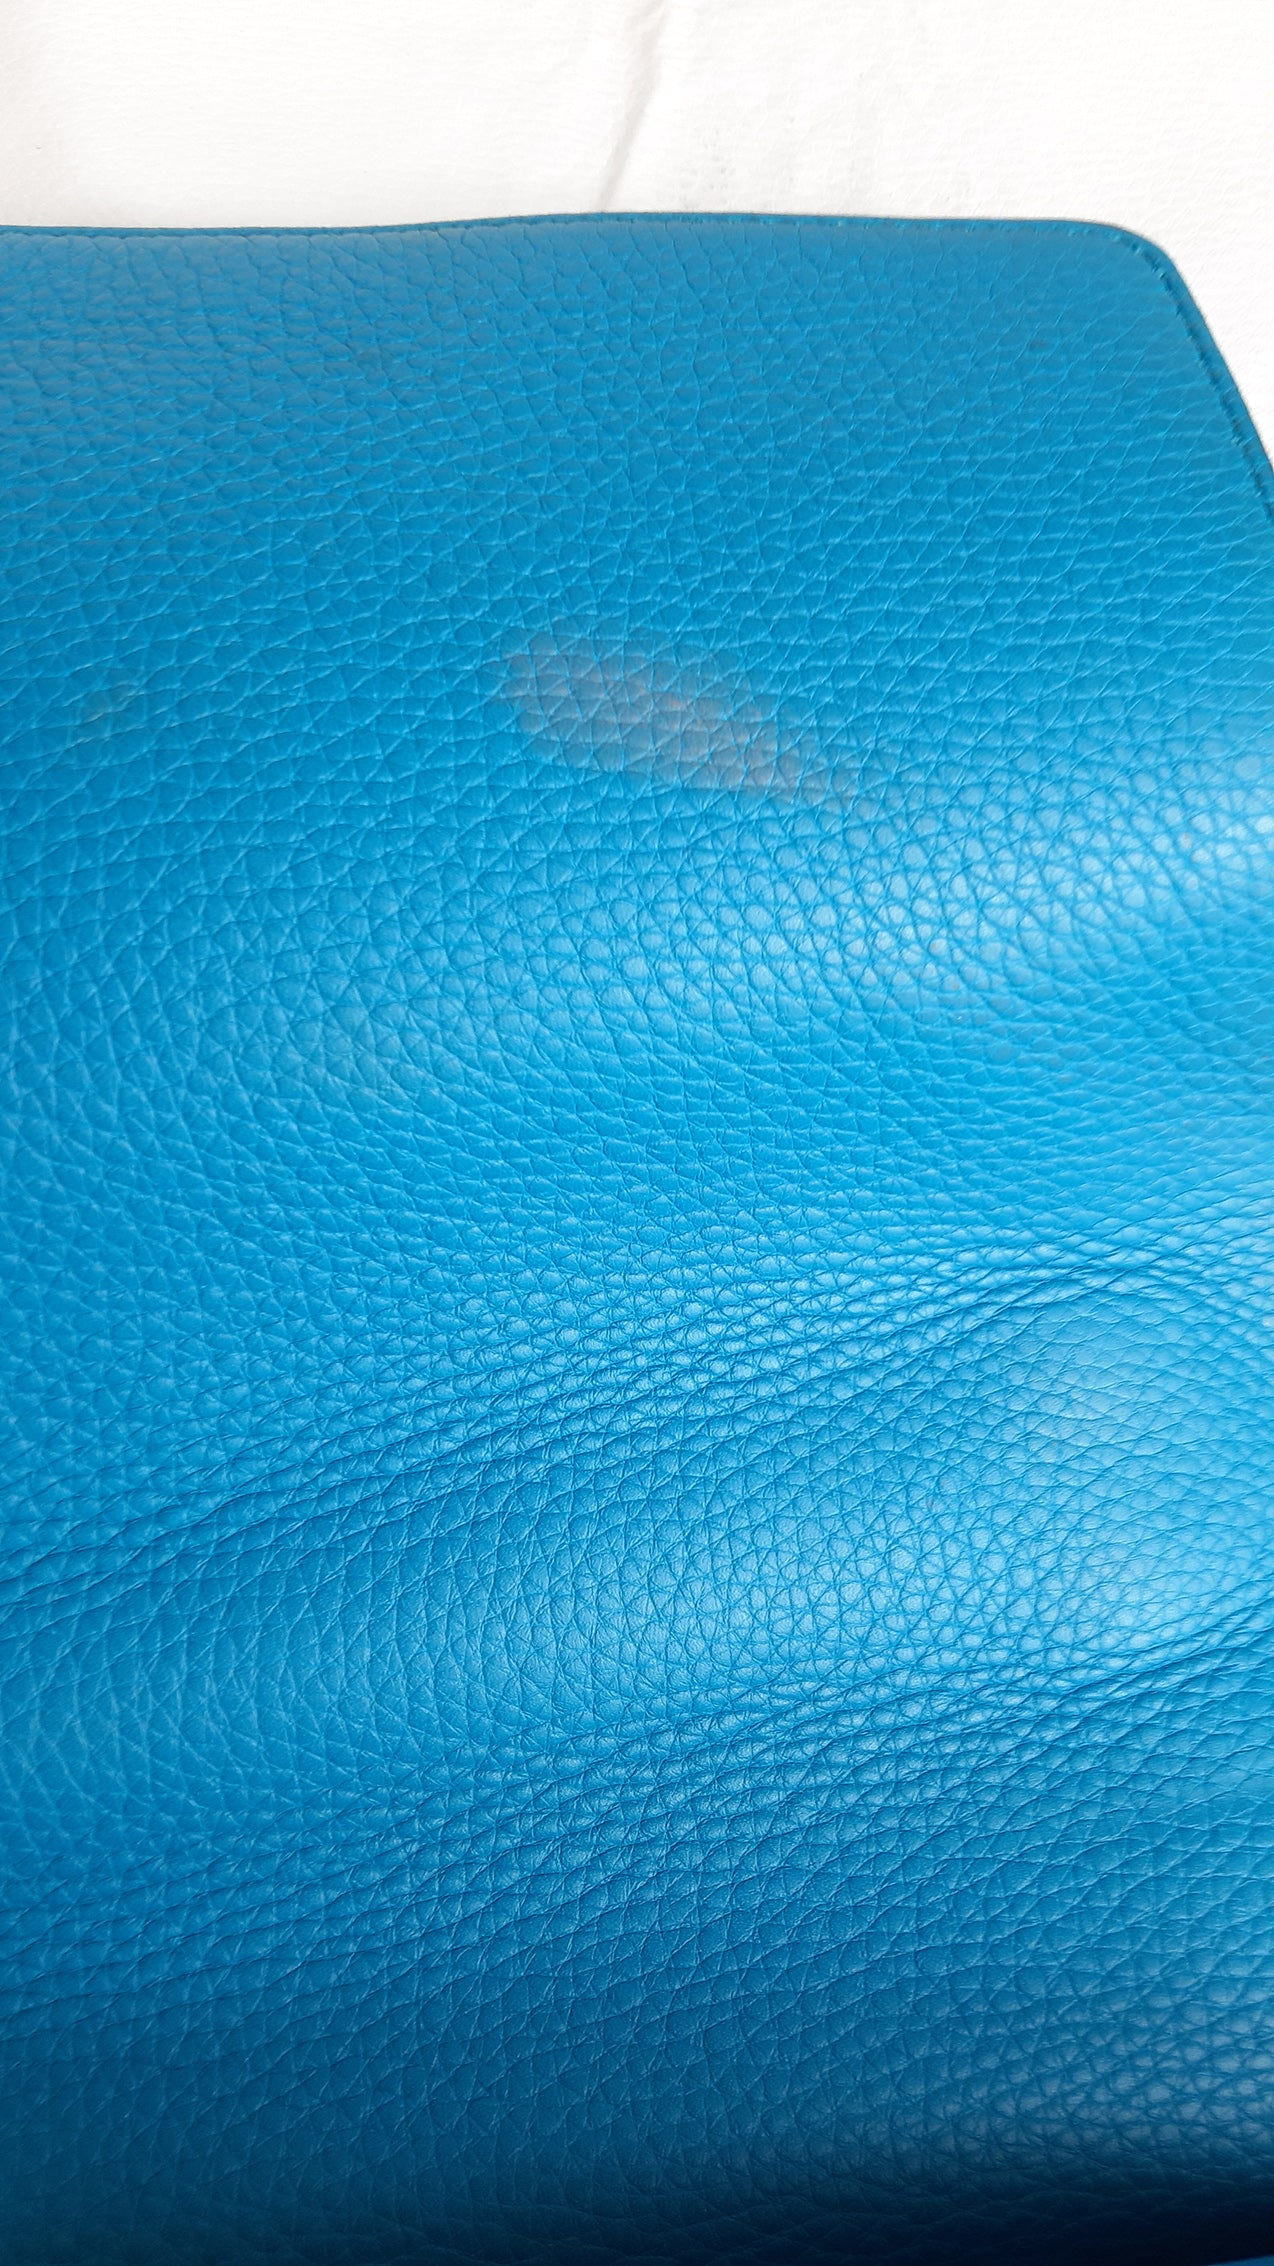 Gucci Marmont Turquoise Shoulder Bag in Leather